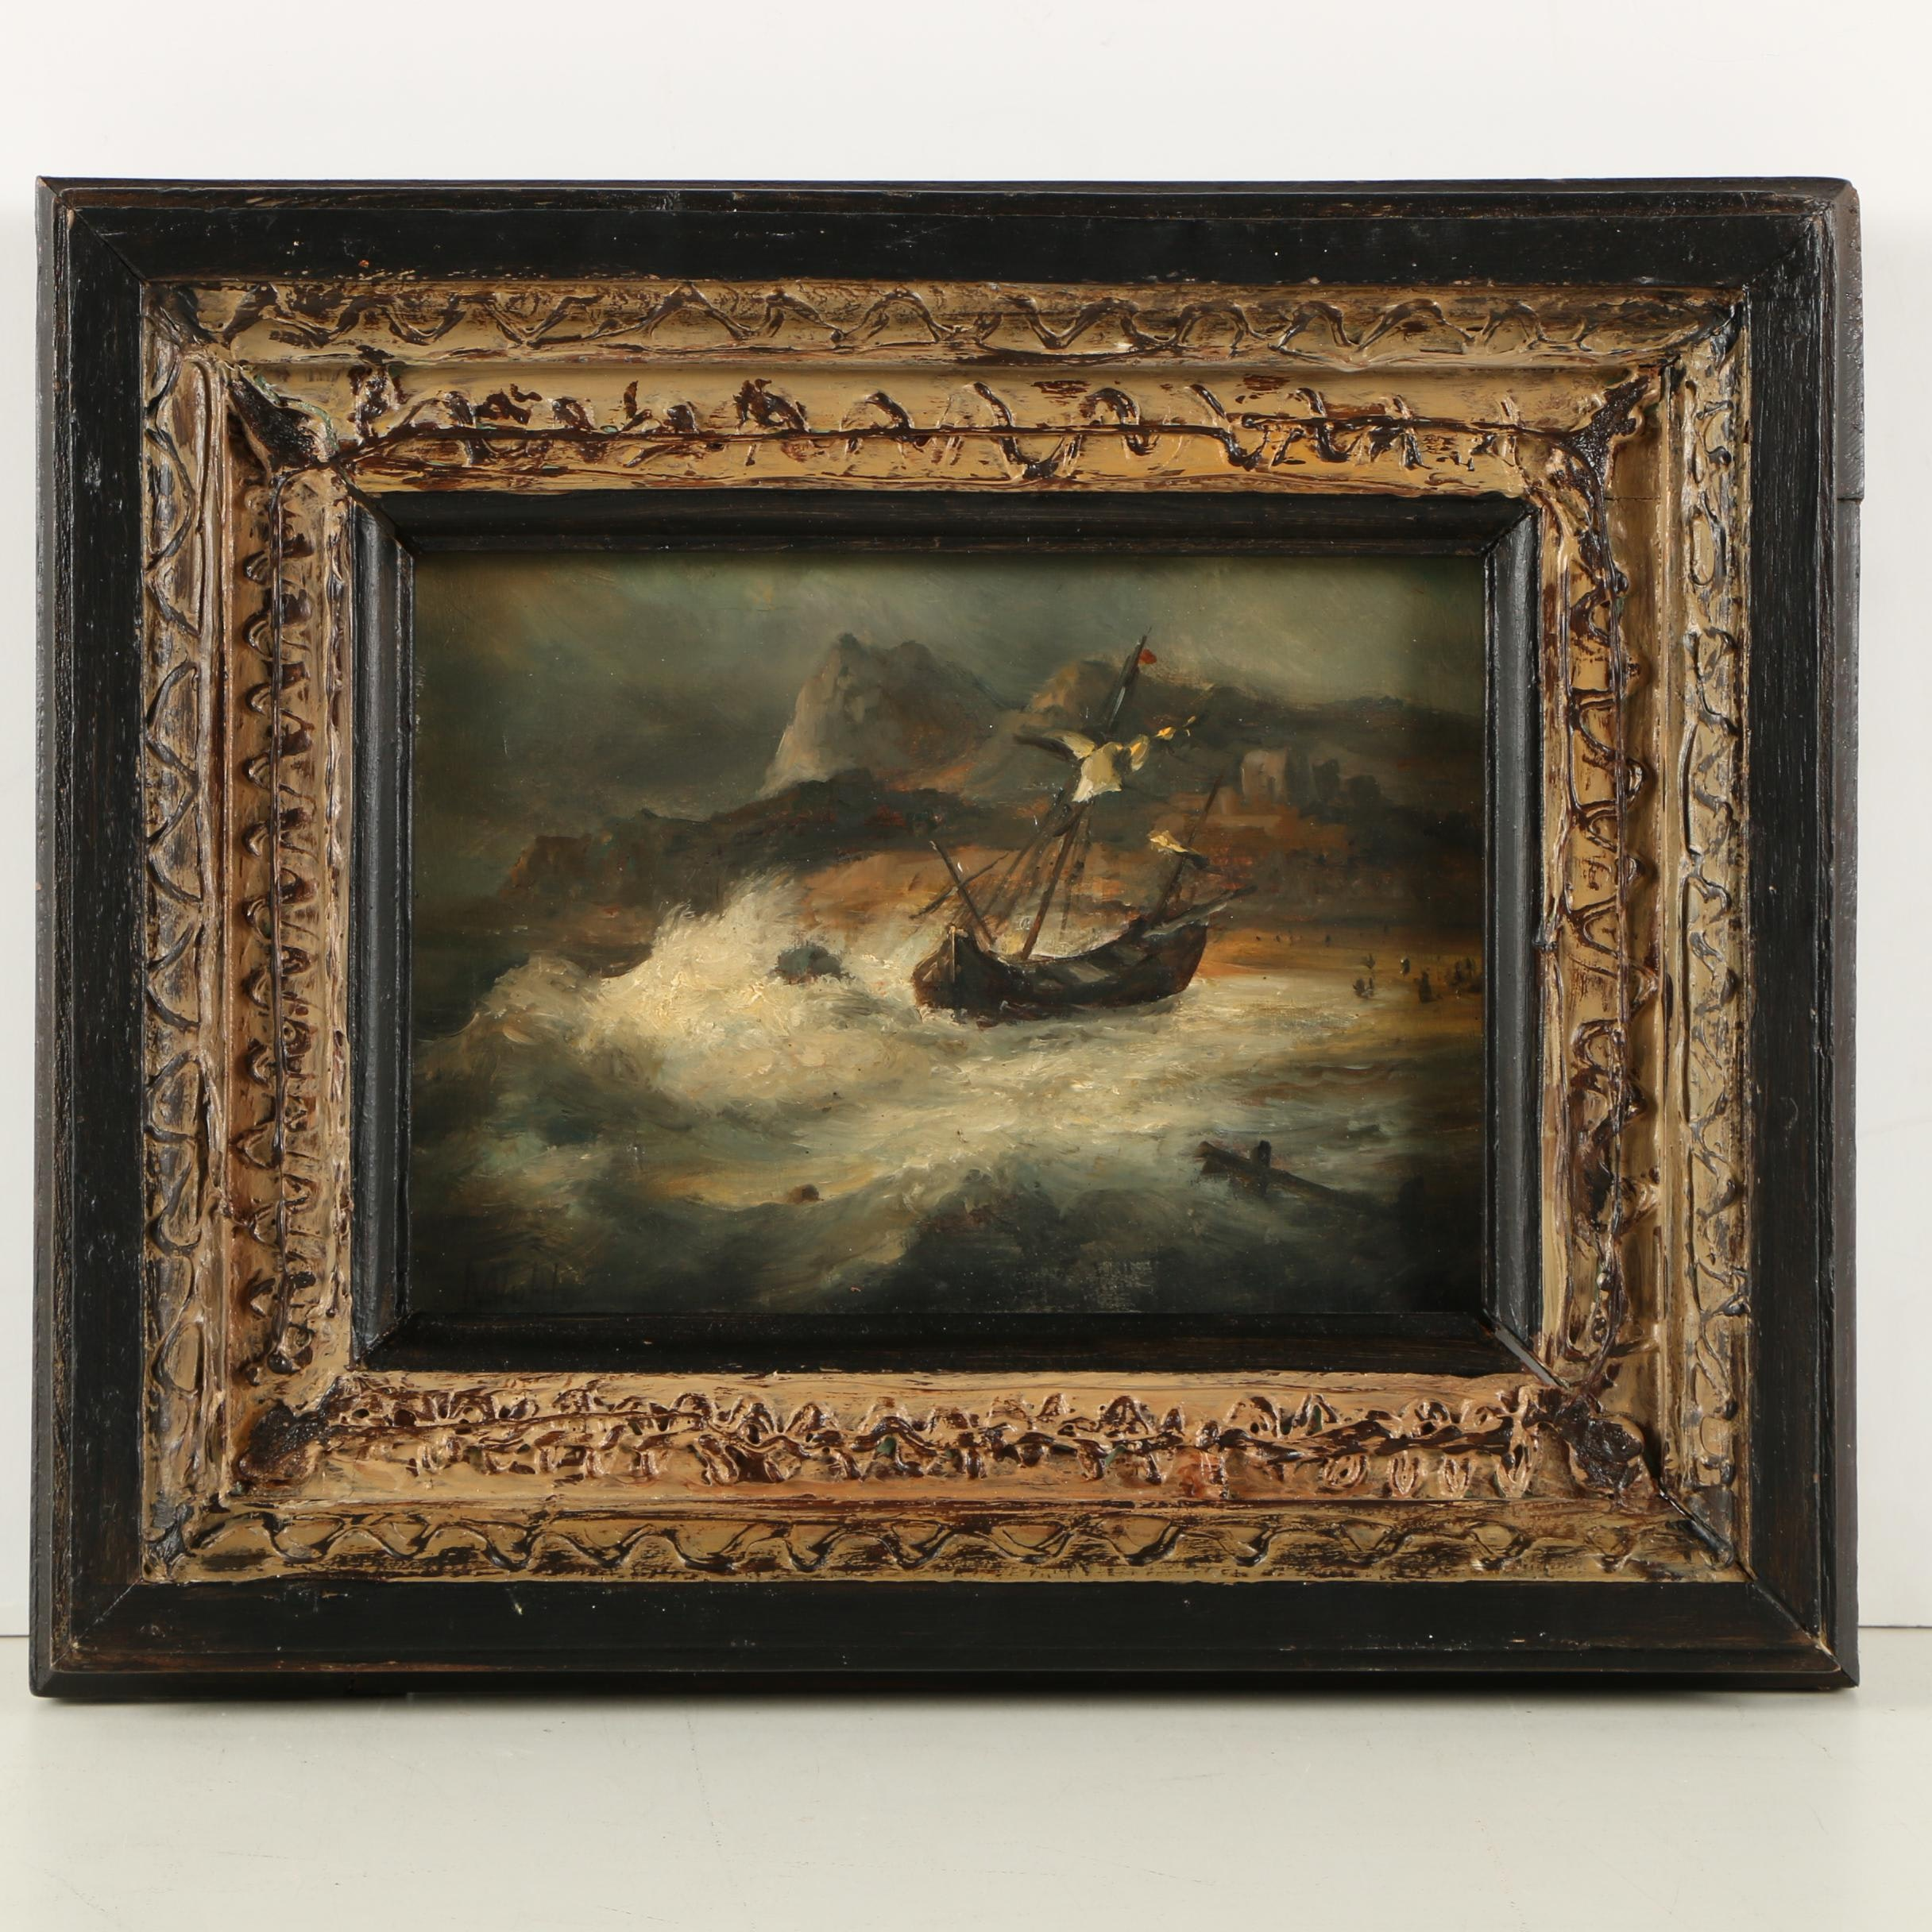 Oil Painting of a Ship in Turbulent Waters